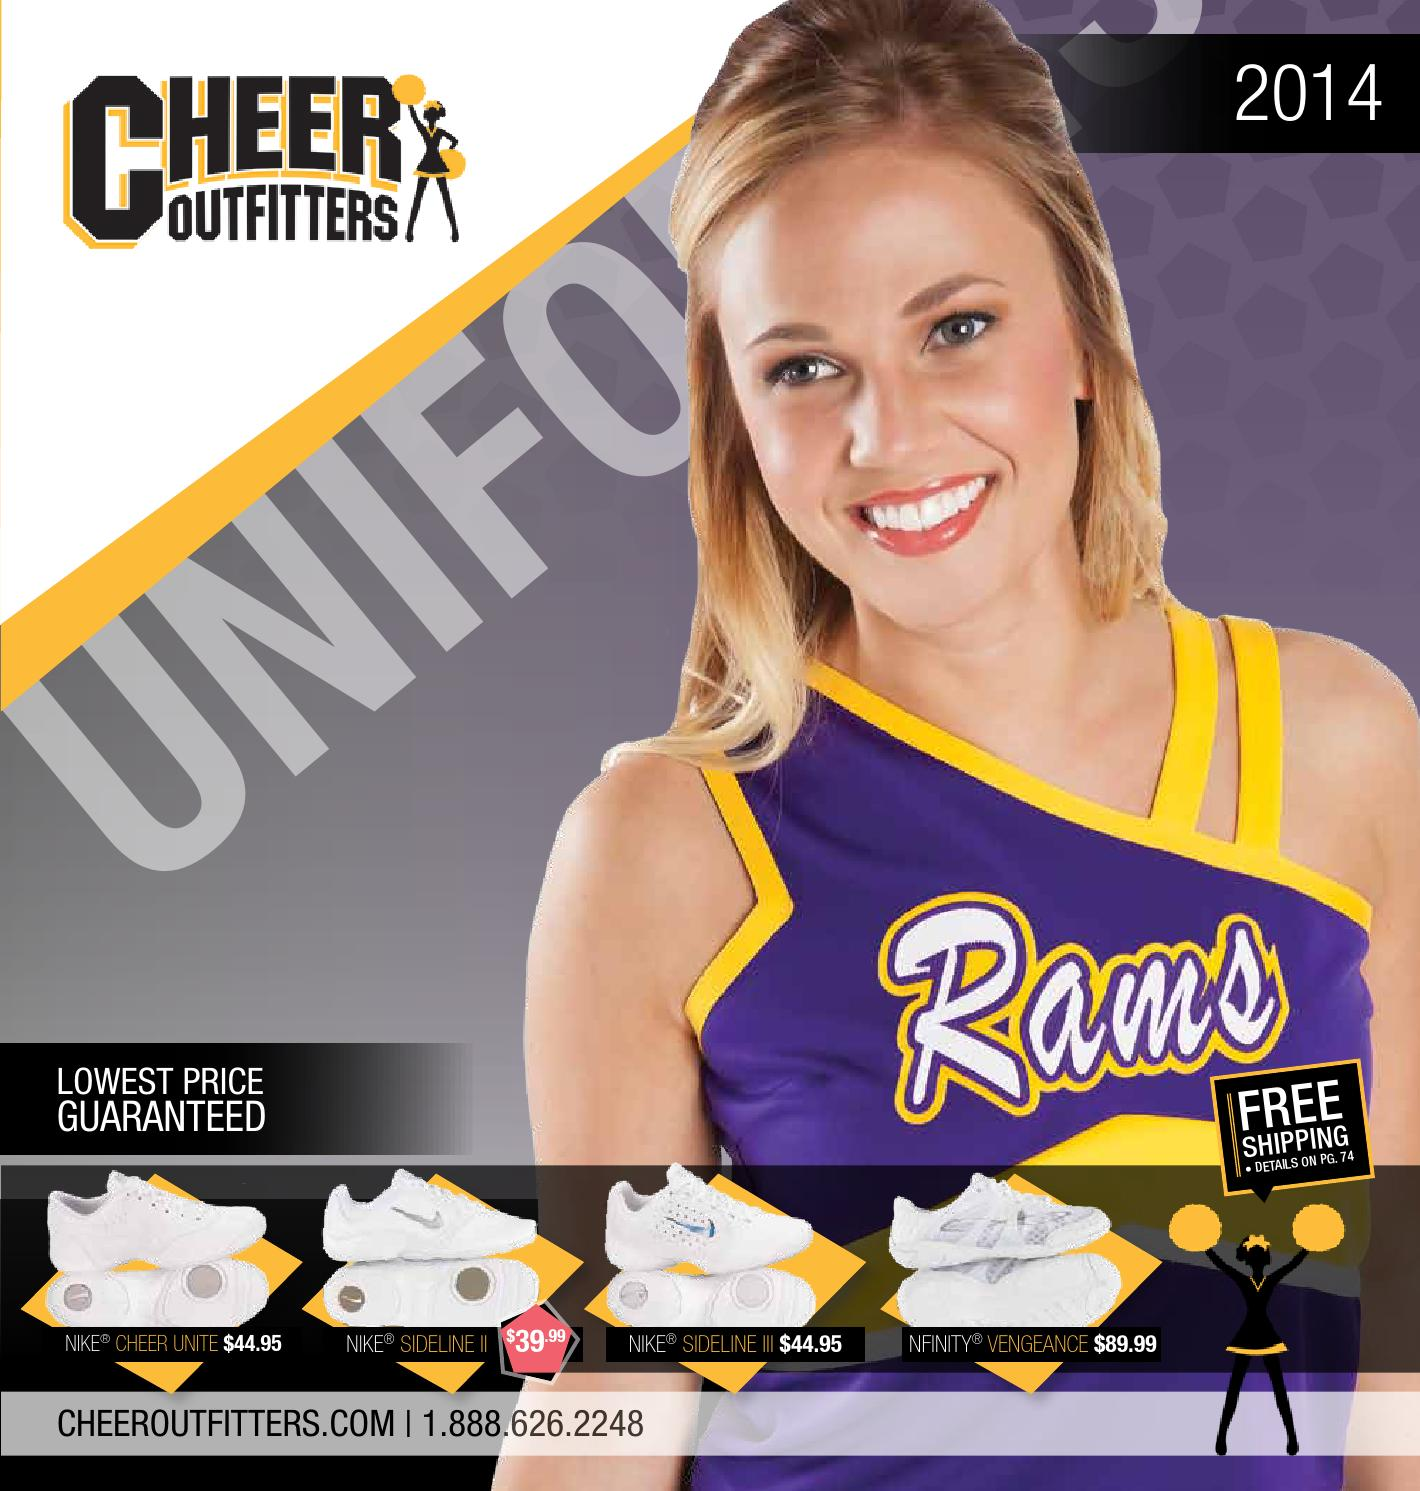 Cheer Outfitters Catalog 2014 by Cheer Outfitters issuu